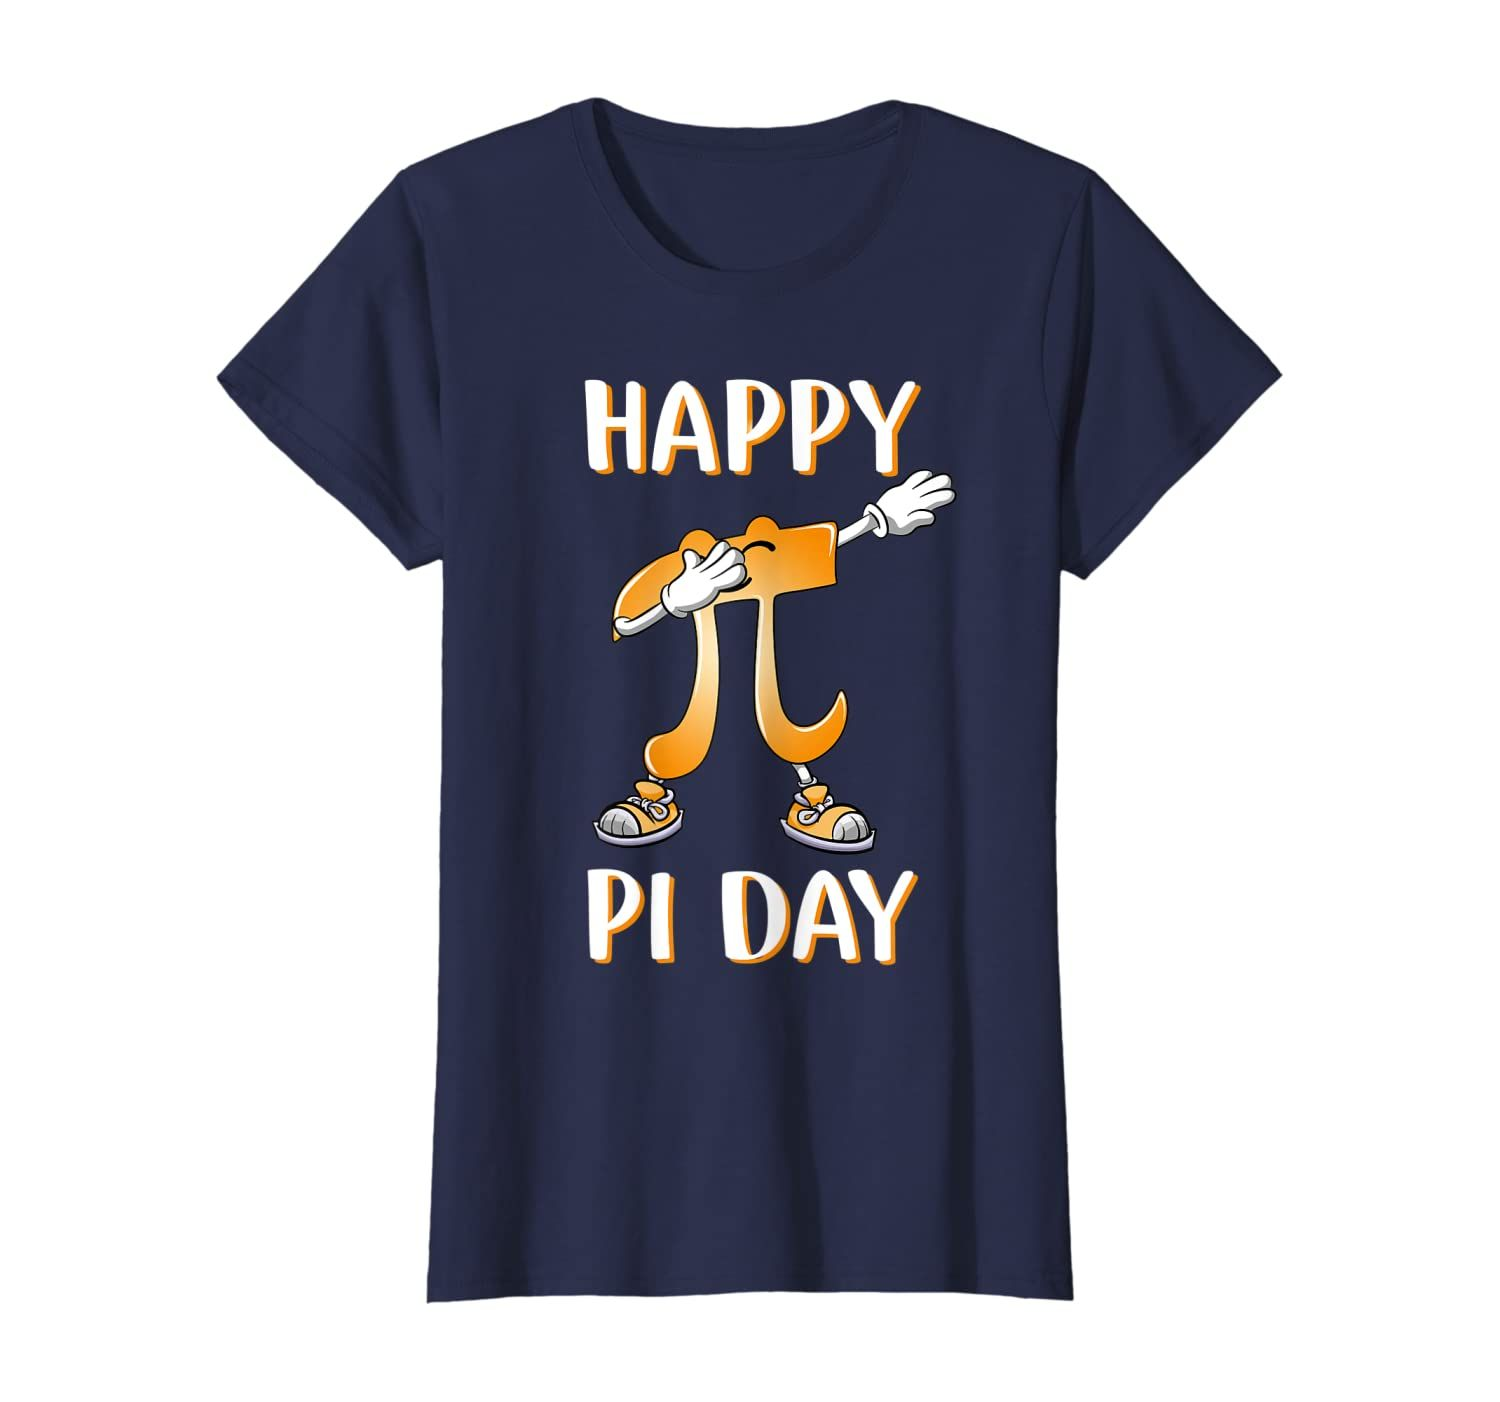 Shop Funny Dabbing Happy Pi Day Love Math Shirt Gift For Men today from my store, 100 percent satisfaction guaranteed. Also available: Shirts, Long Sleeve, Hoodie, Ladies Tee.... ✓ Unique designs ✓ Large assortment ✓ Easy 30 day return policy. We normally ship all items within 2 - 4 business days after payment is received.Packages usually arrive within 6 - 15 business days. International shipping times vary by location, and usually ranges from 2 - 5 weeks.  Unique holiday season collections for